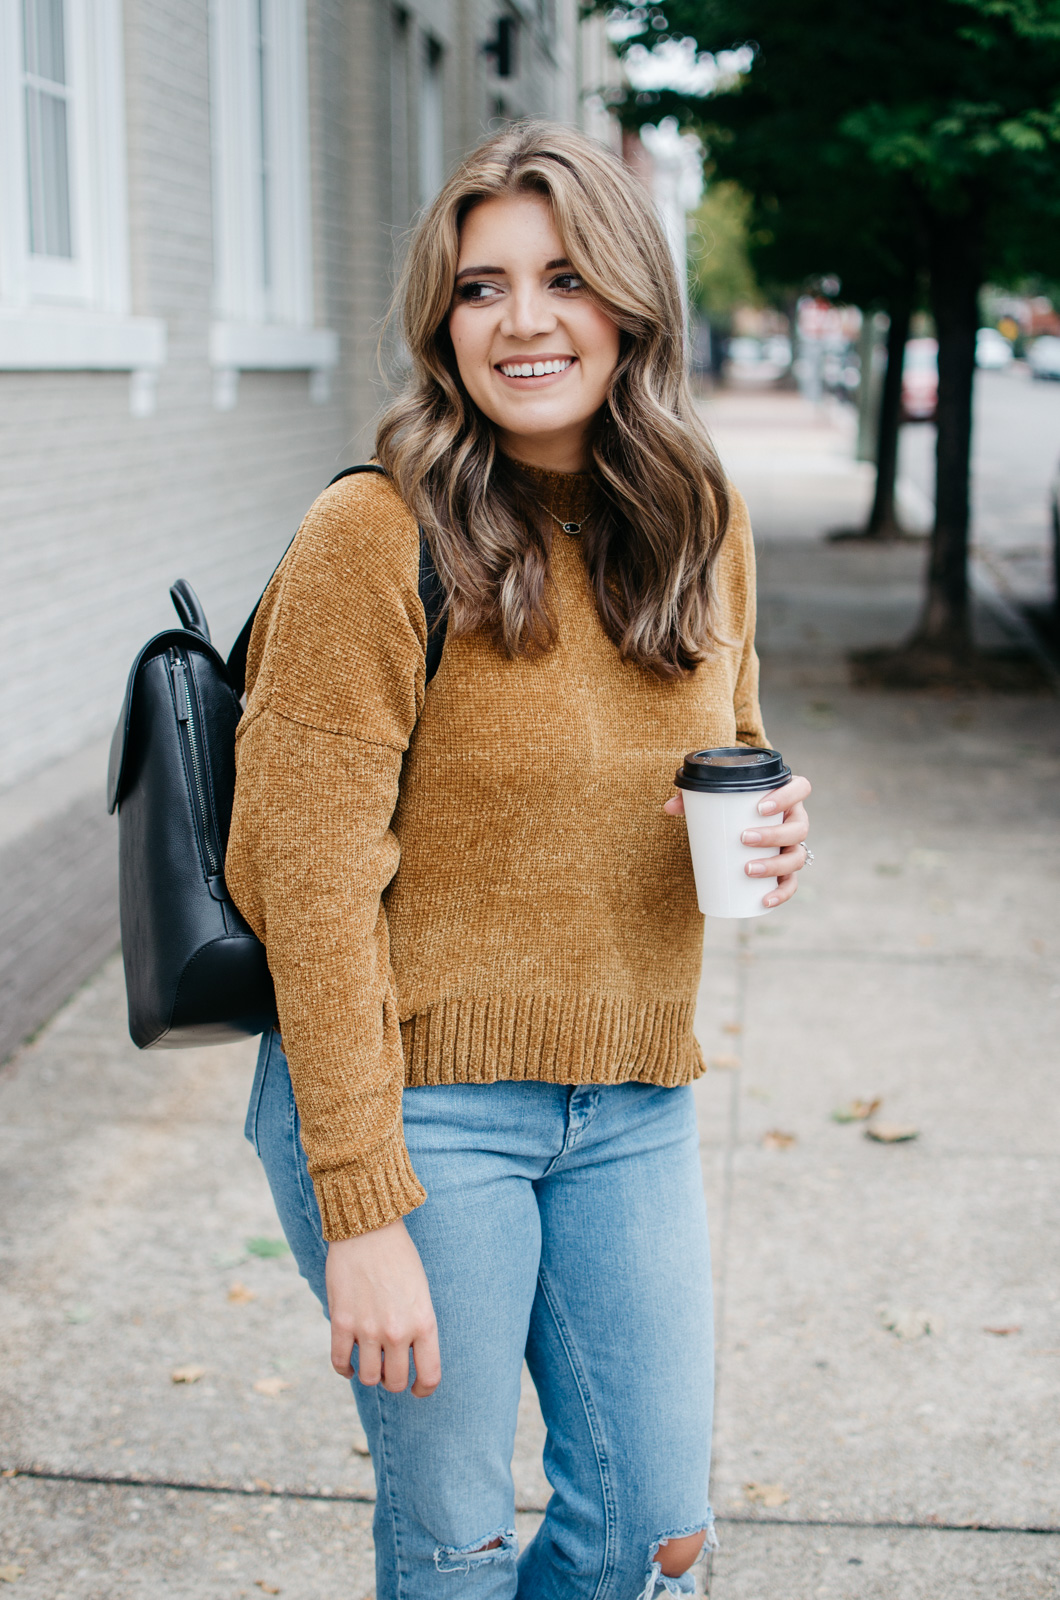 fall outfit ideas - backpack outfit ideas | See more trendy fall outfits at bylaurenm.com!